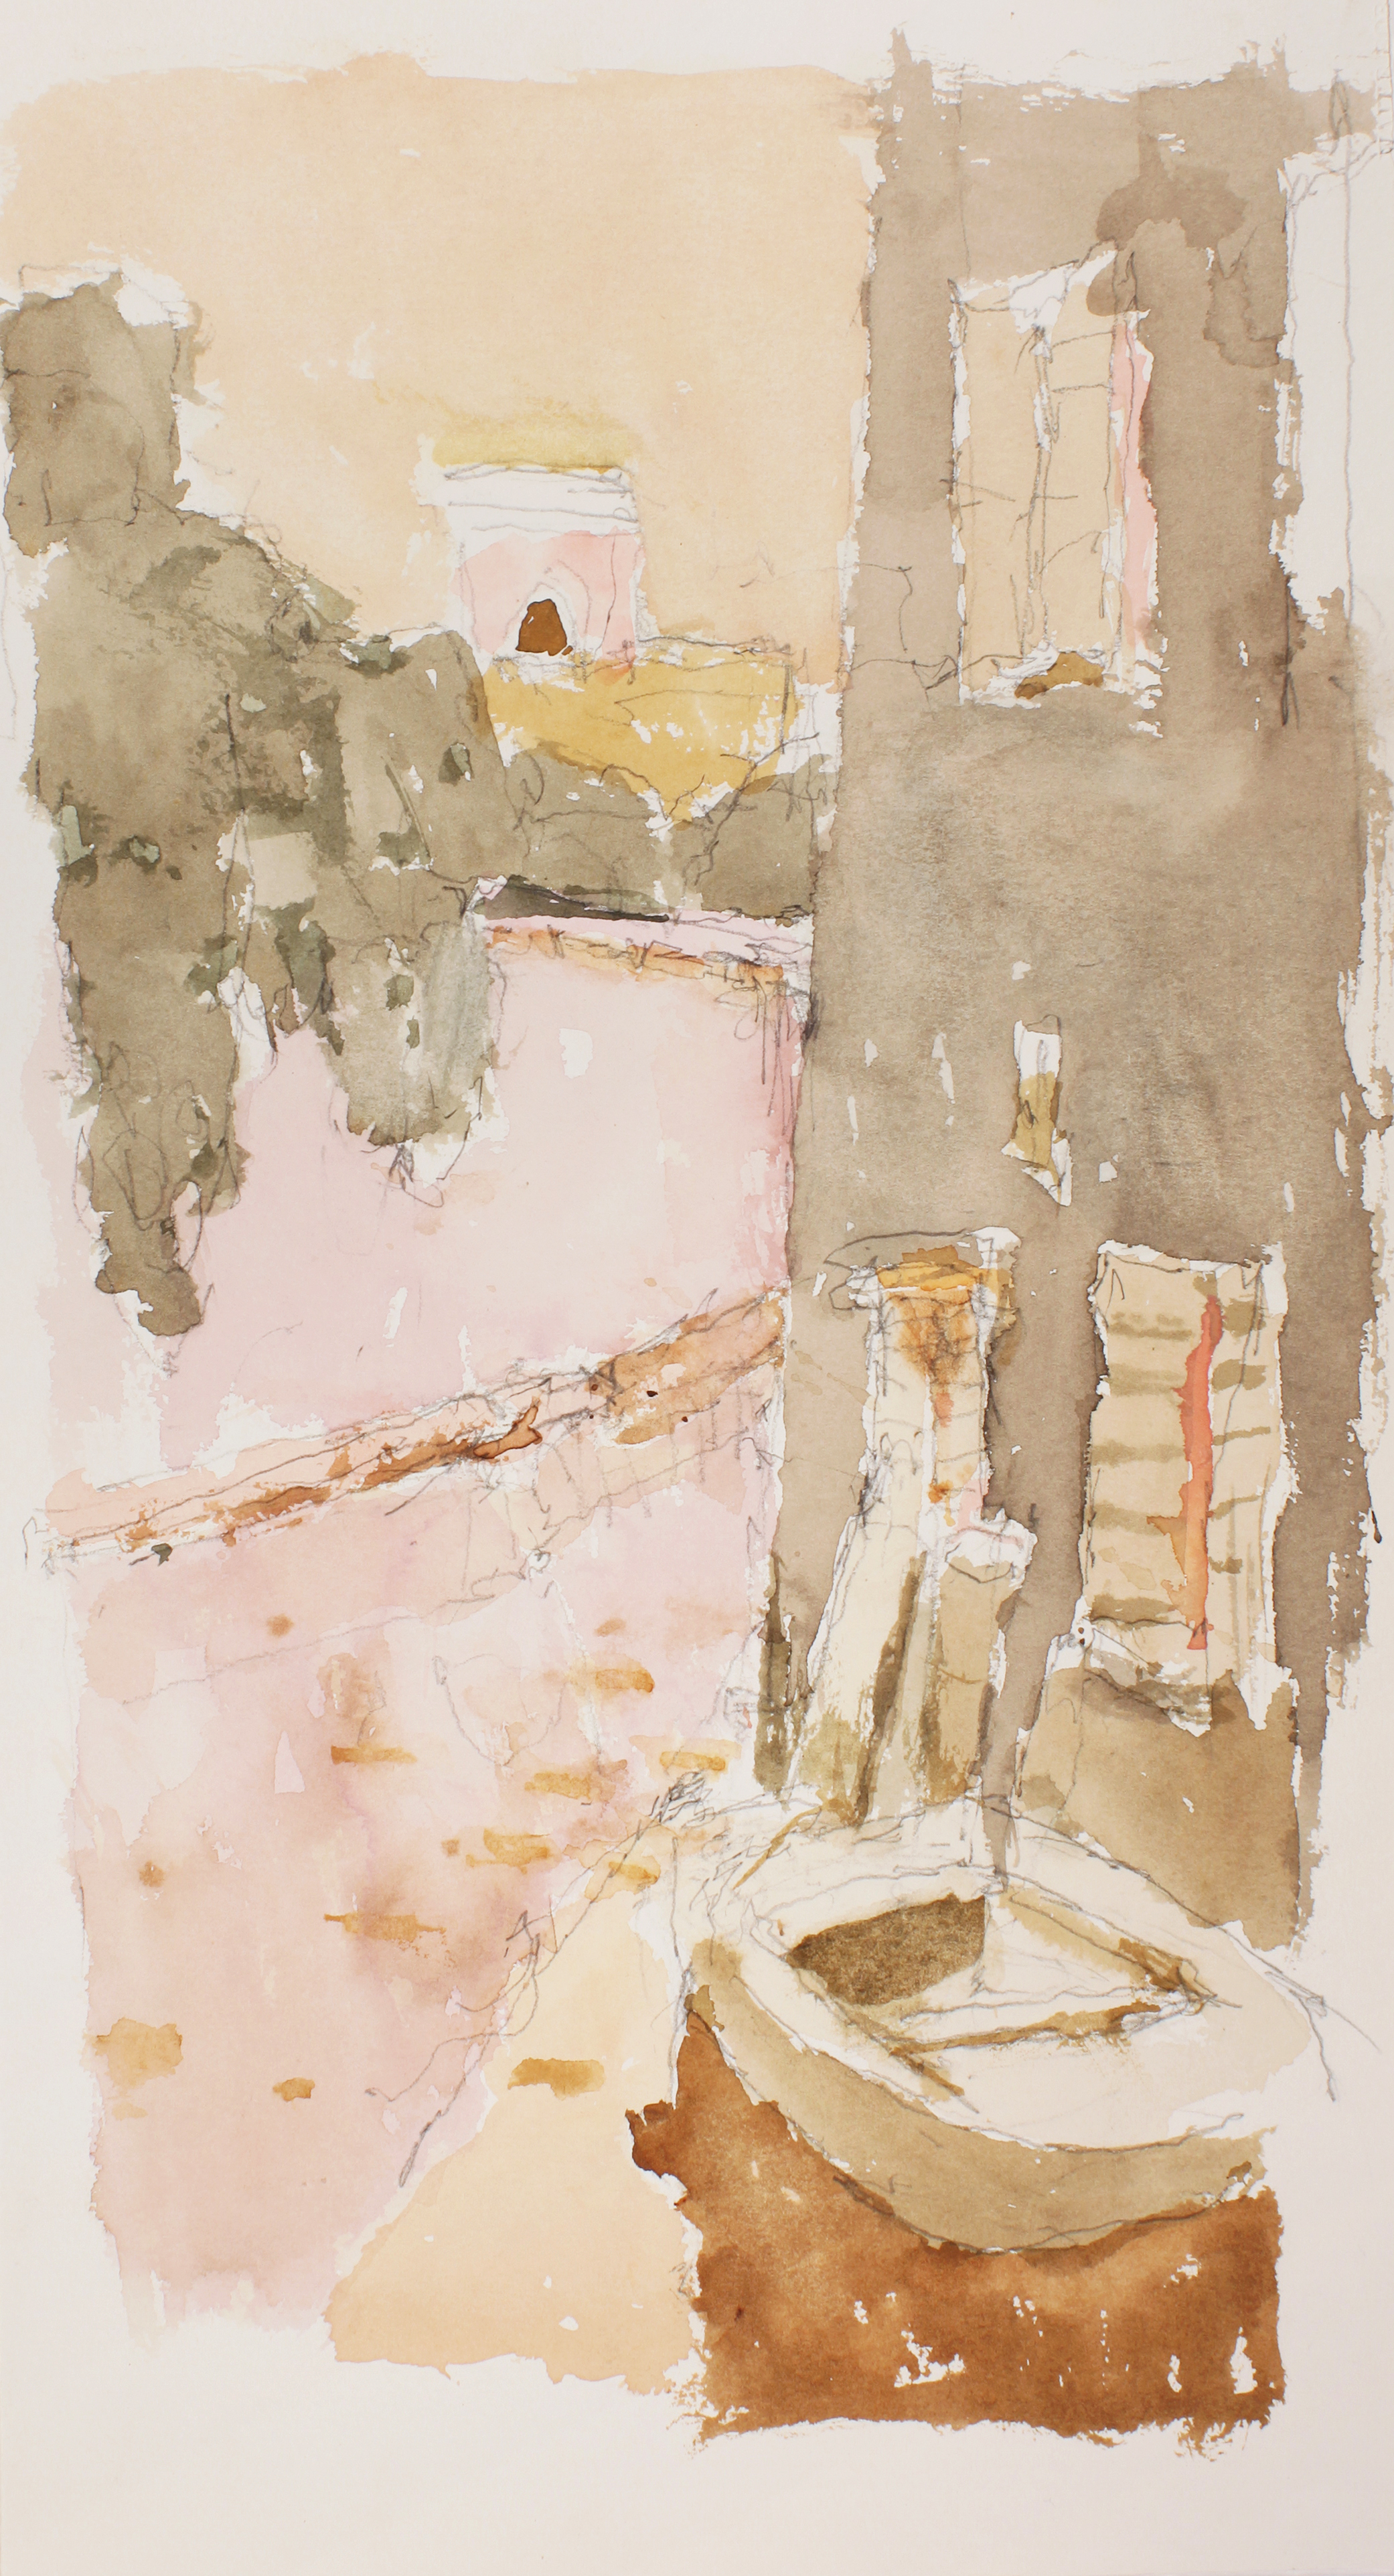 1990s_Canal_with_Pink_Wall_Study_watercolour_and_pencil_on_paper_20x11in_WPF245.jpg